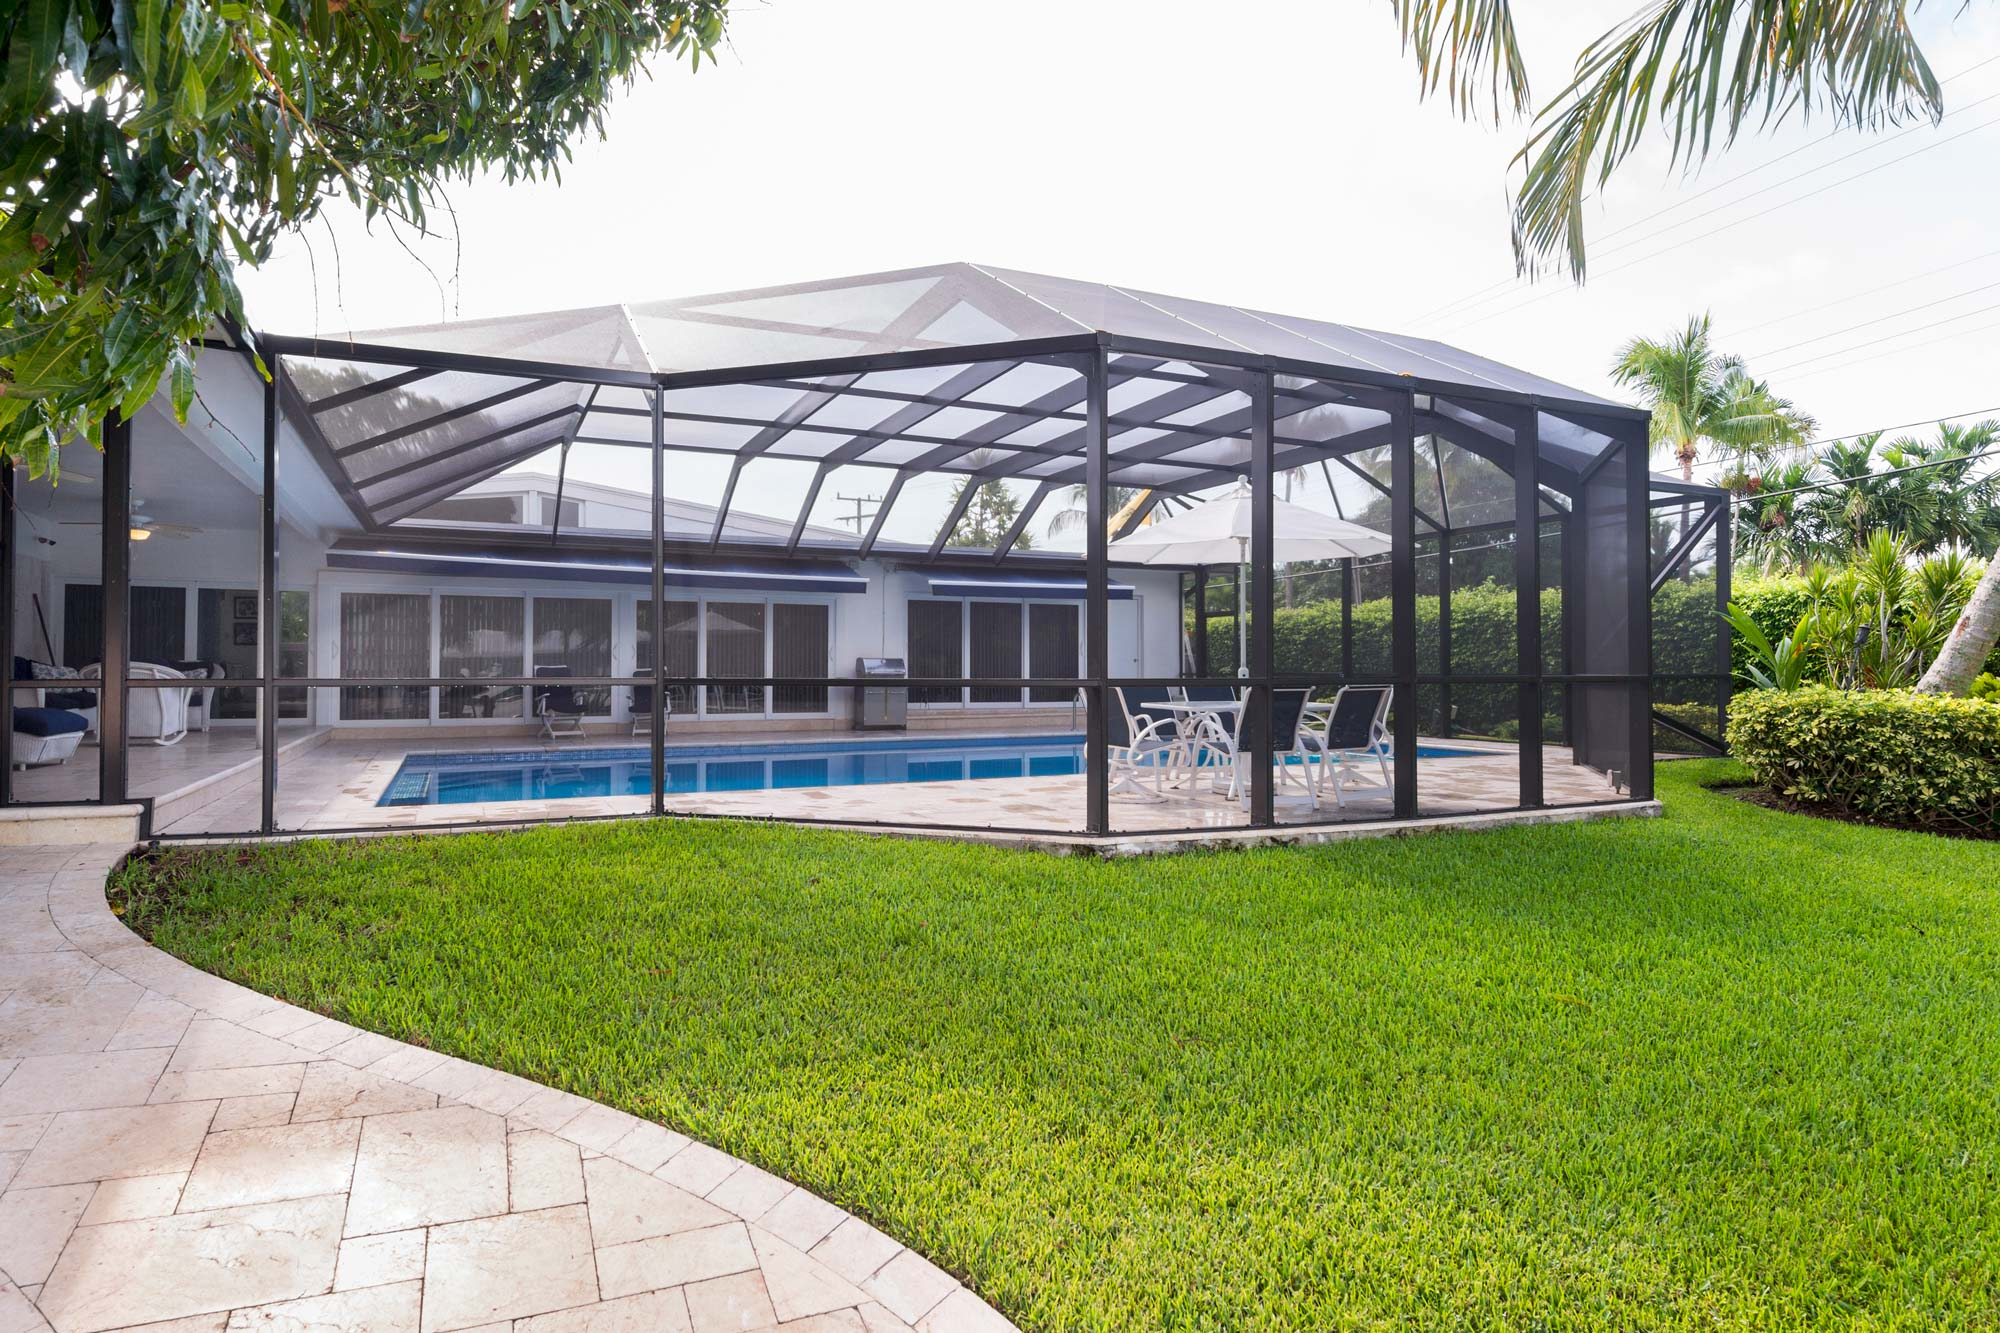 Pool-Enclosure-with-Mansard-Roof-and-Bronze-framing-on-a-beautiful-waterfront-home.